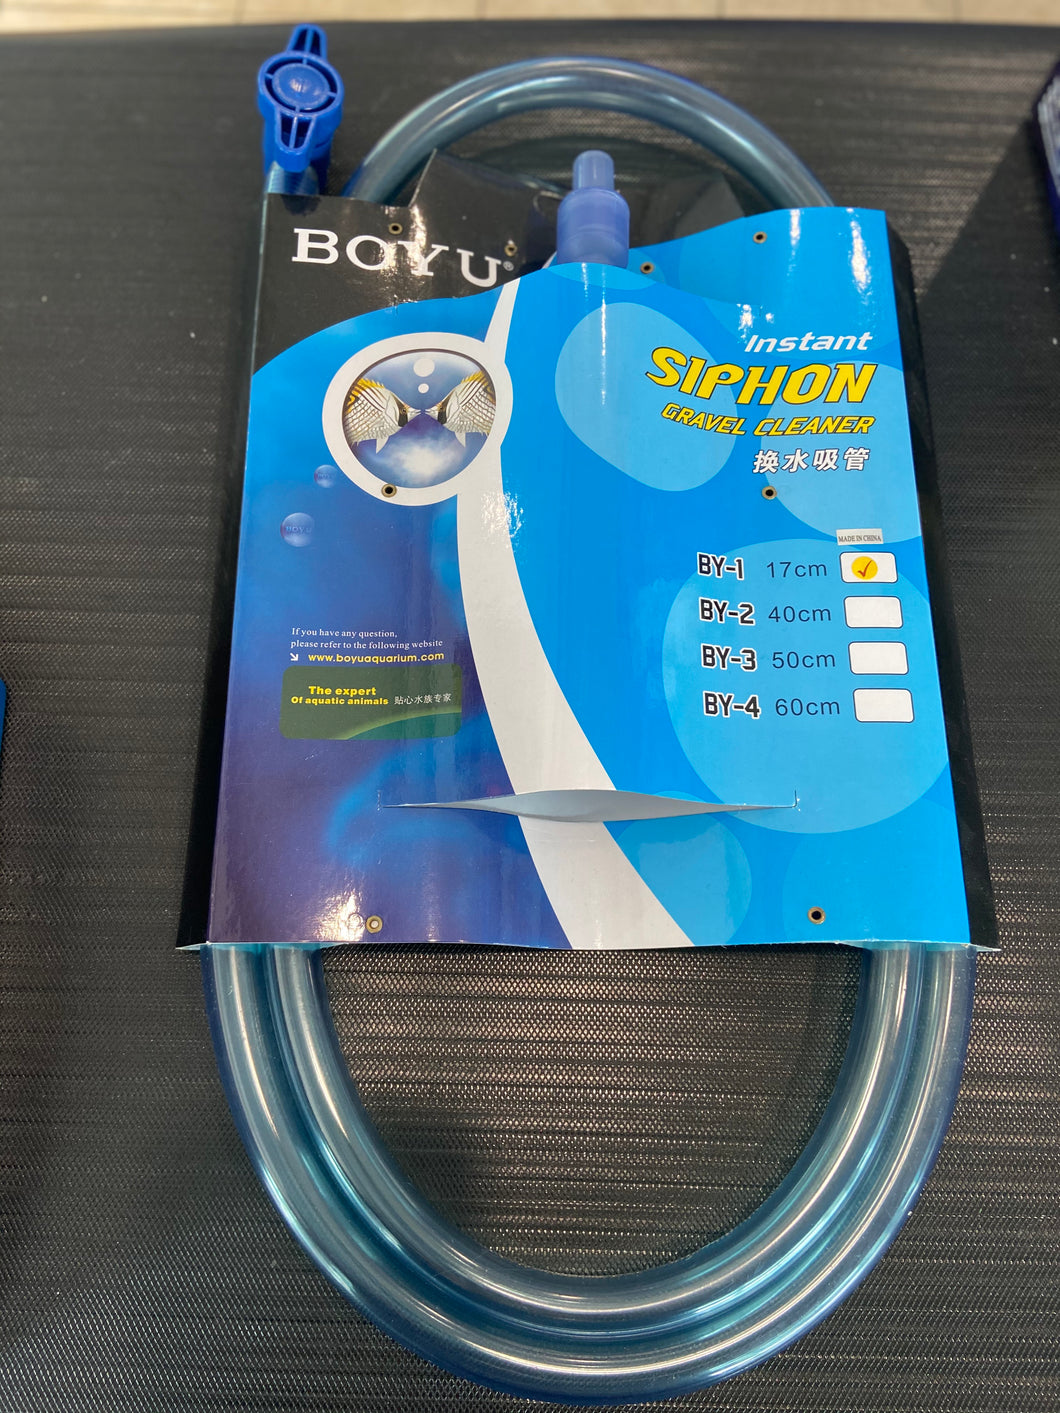 Boyu Instant Siphon Gravel Cleaner BY-1